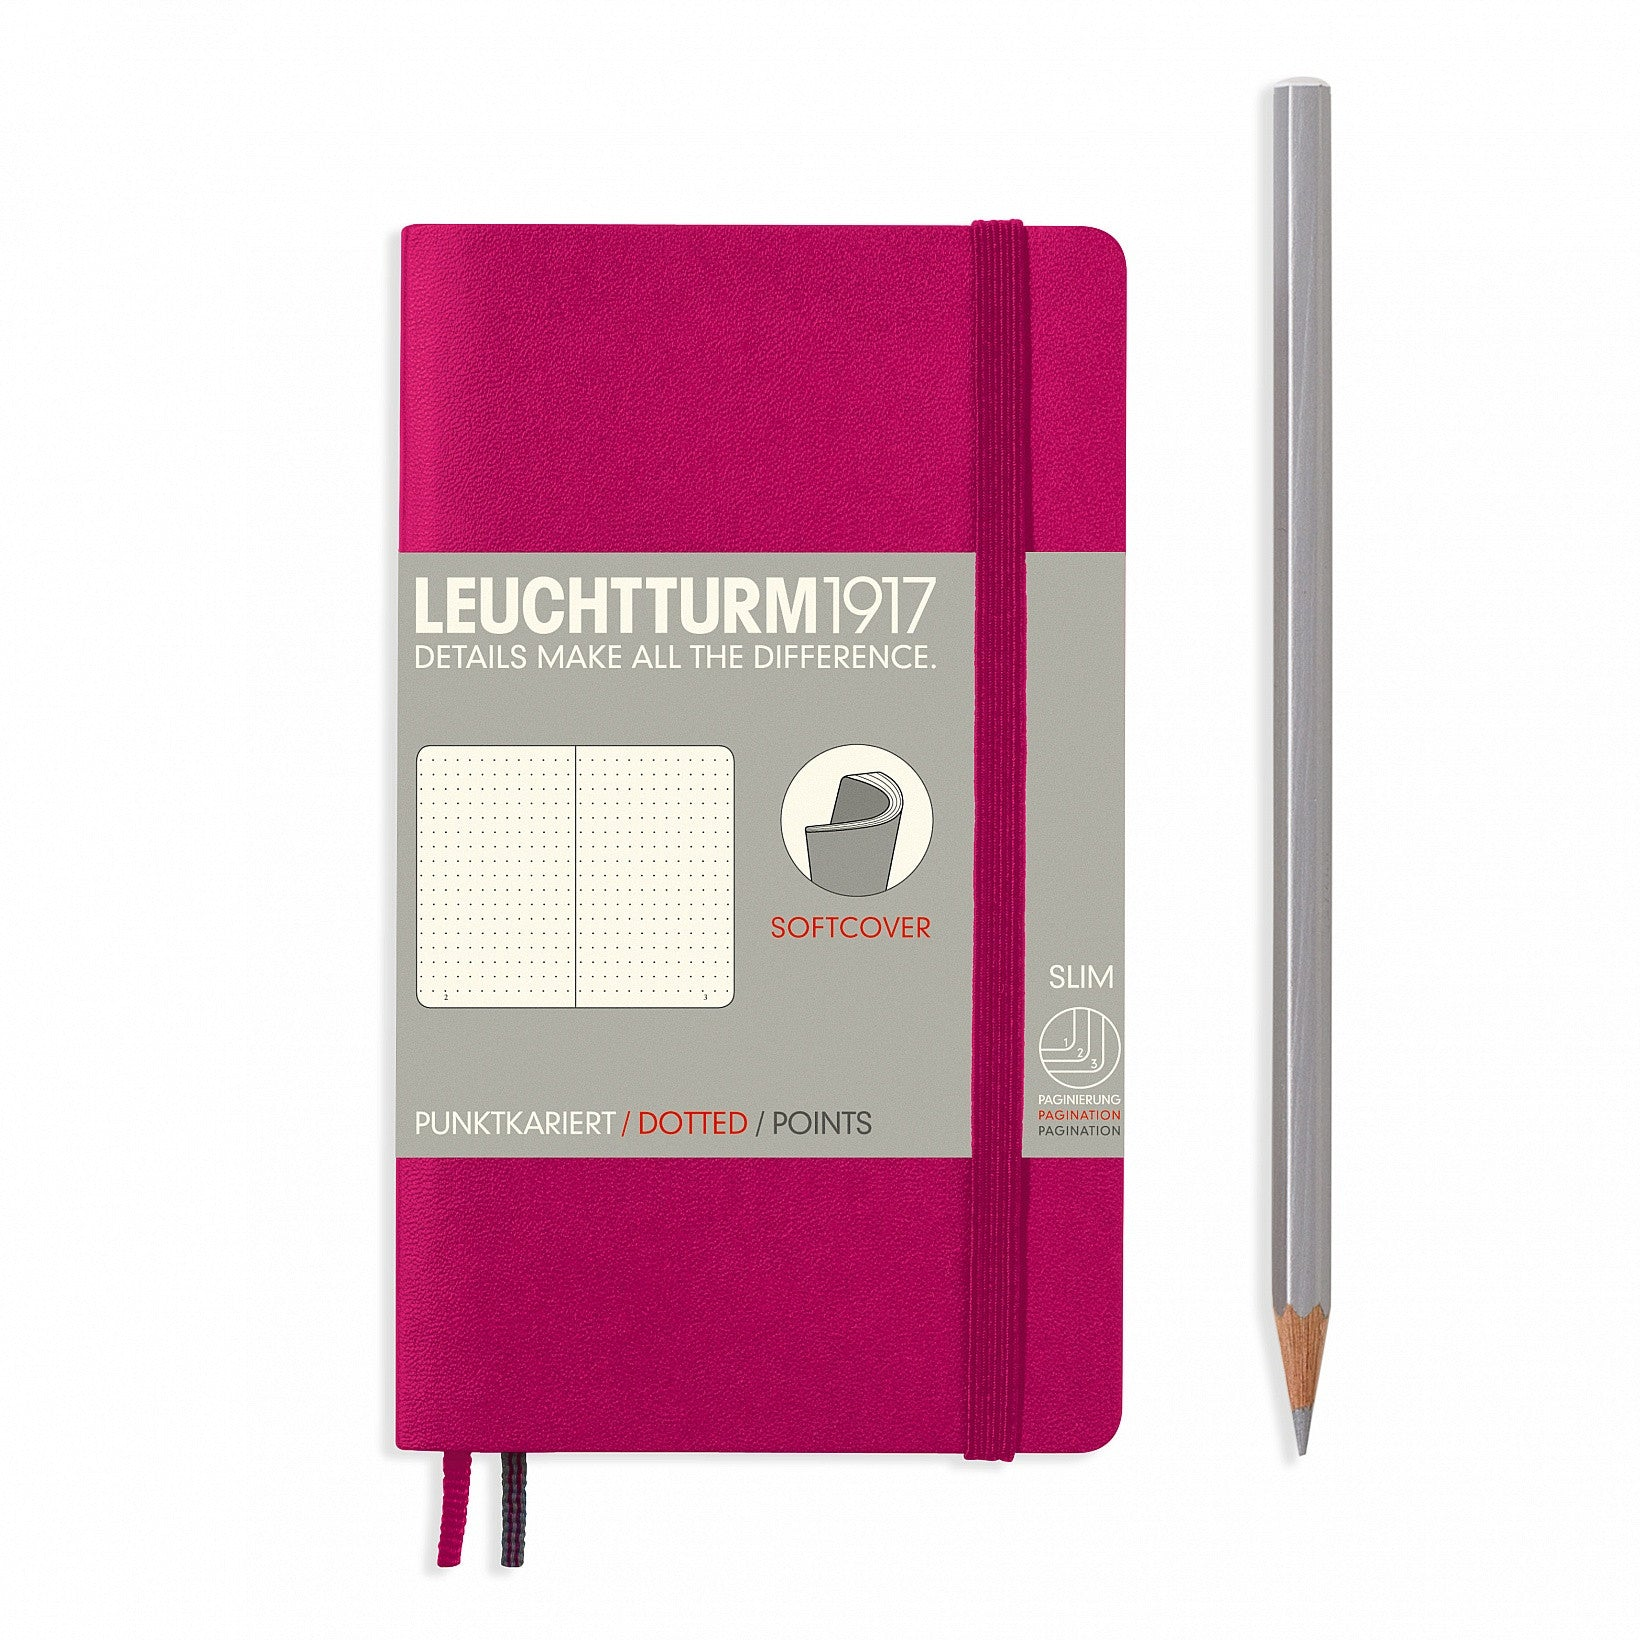 Leuchtturm1917 - A6 Pocket Softcover Notebook - Dotted